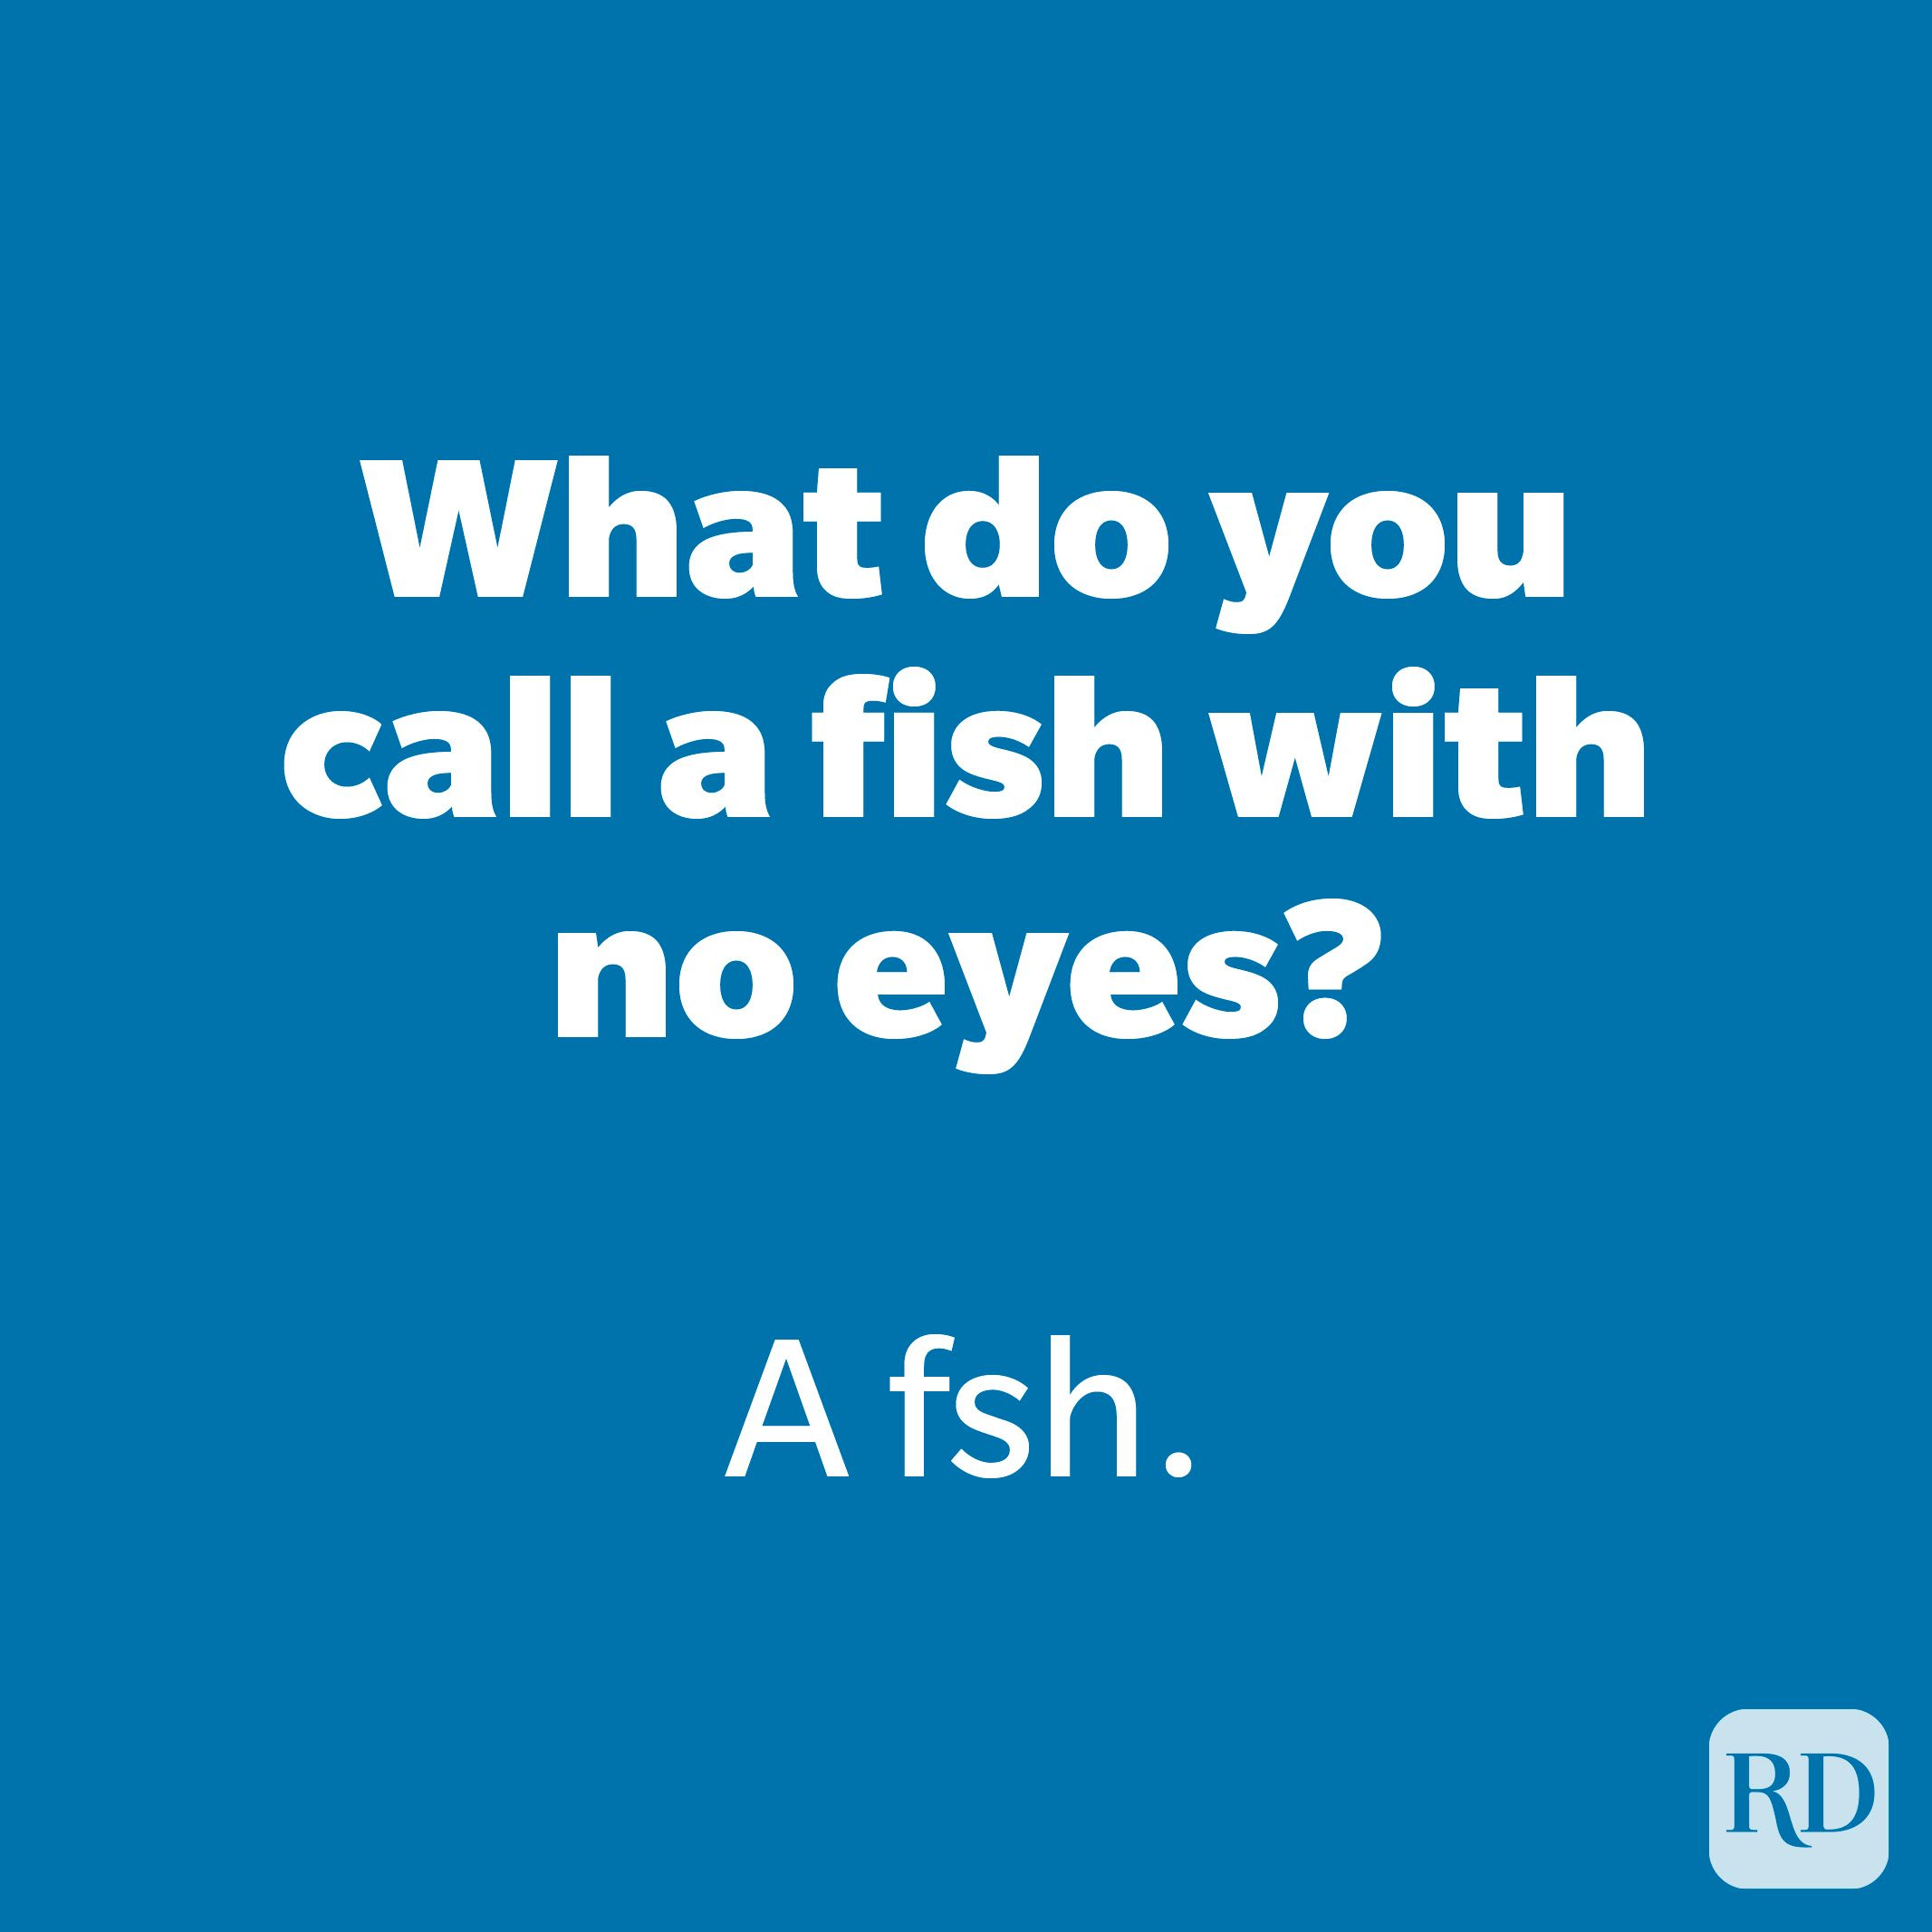 What do you call a fish with no eyes?